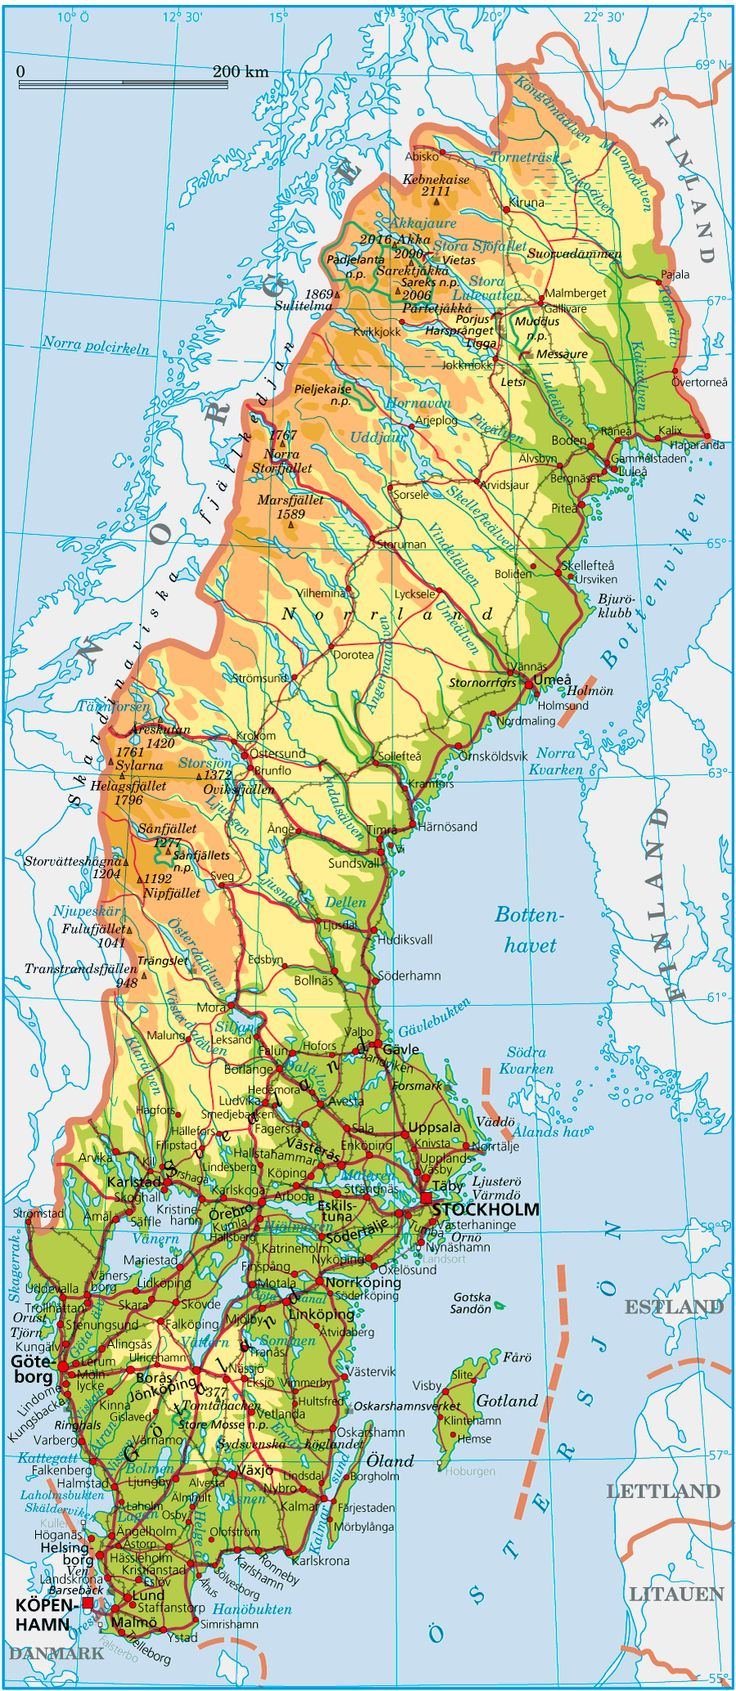 In the 1700 Peter began a long war with Sweden and dominated the Baltic region.